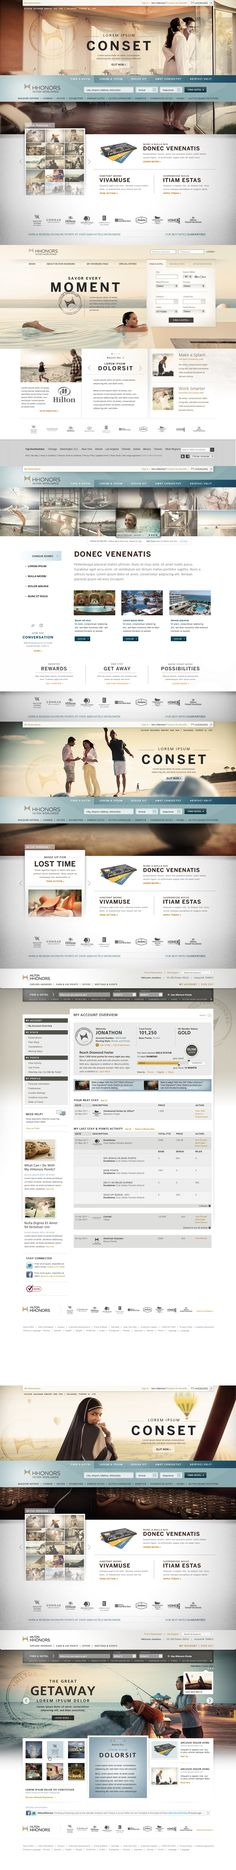 Hilton Web Re Design Layout Ideas Complete Mockup Graphic Design Inspirational Webdesign 2 Portfolio Web Design, Web Ui Design, Best Web Design, Portfolio Layout, Creative Design, Website Design Inspiration, Layout Inspiration, Web Layout, Layout Design